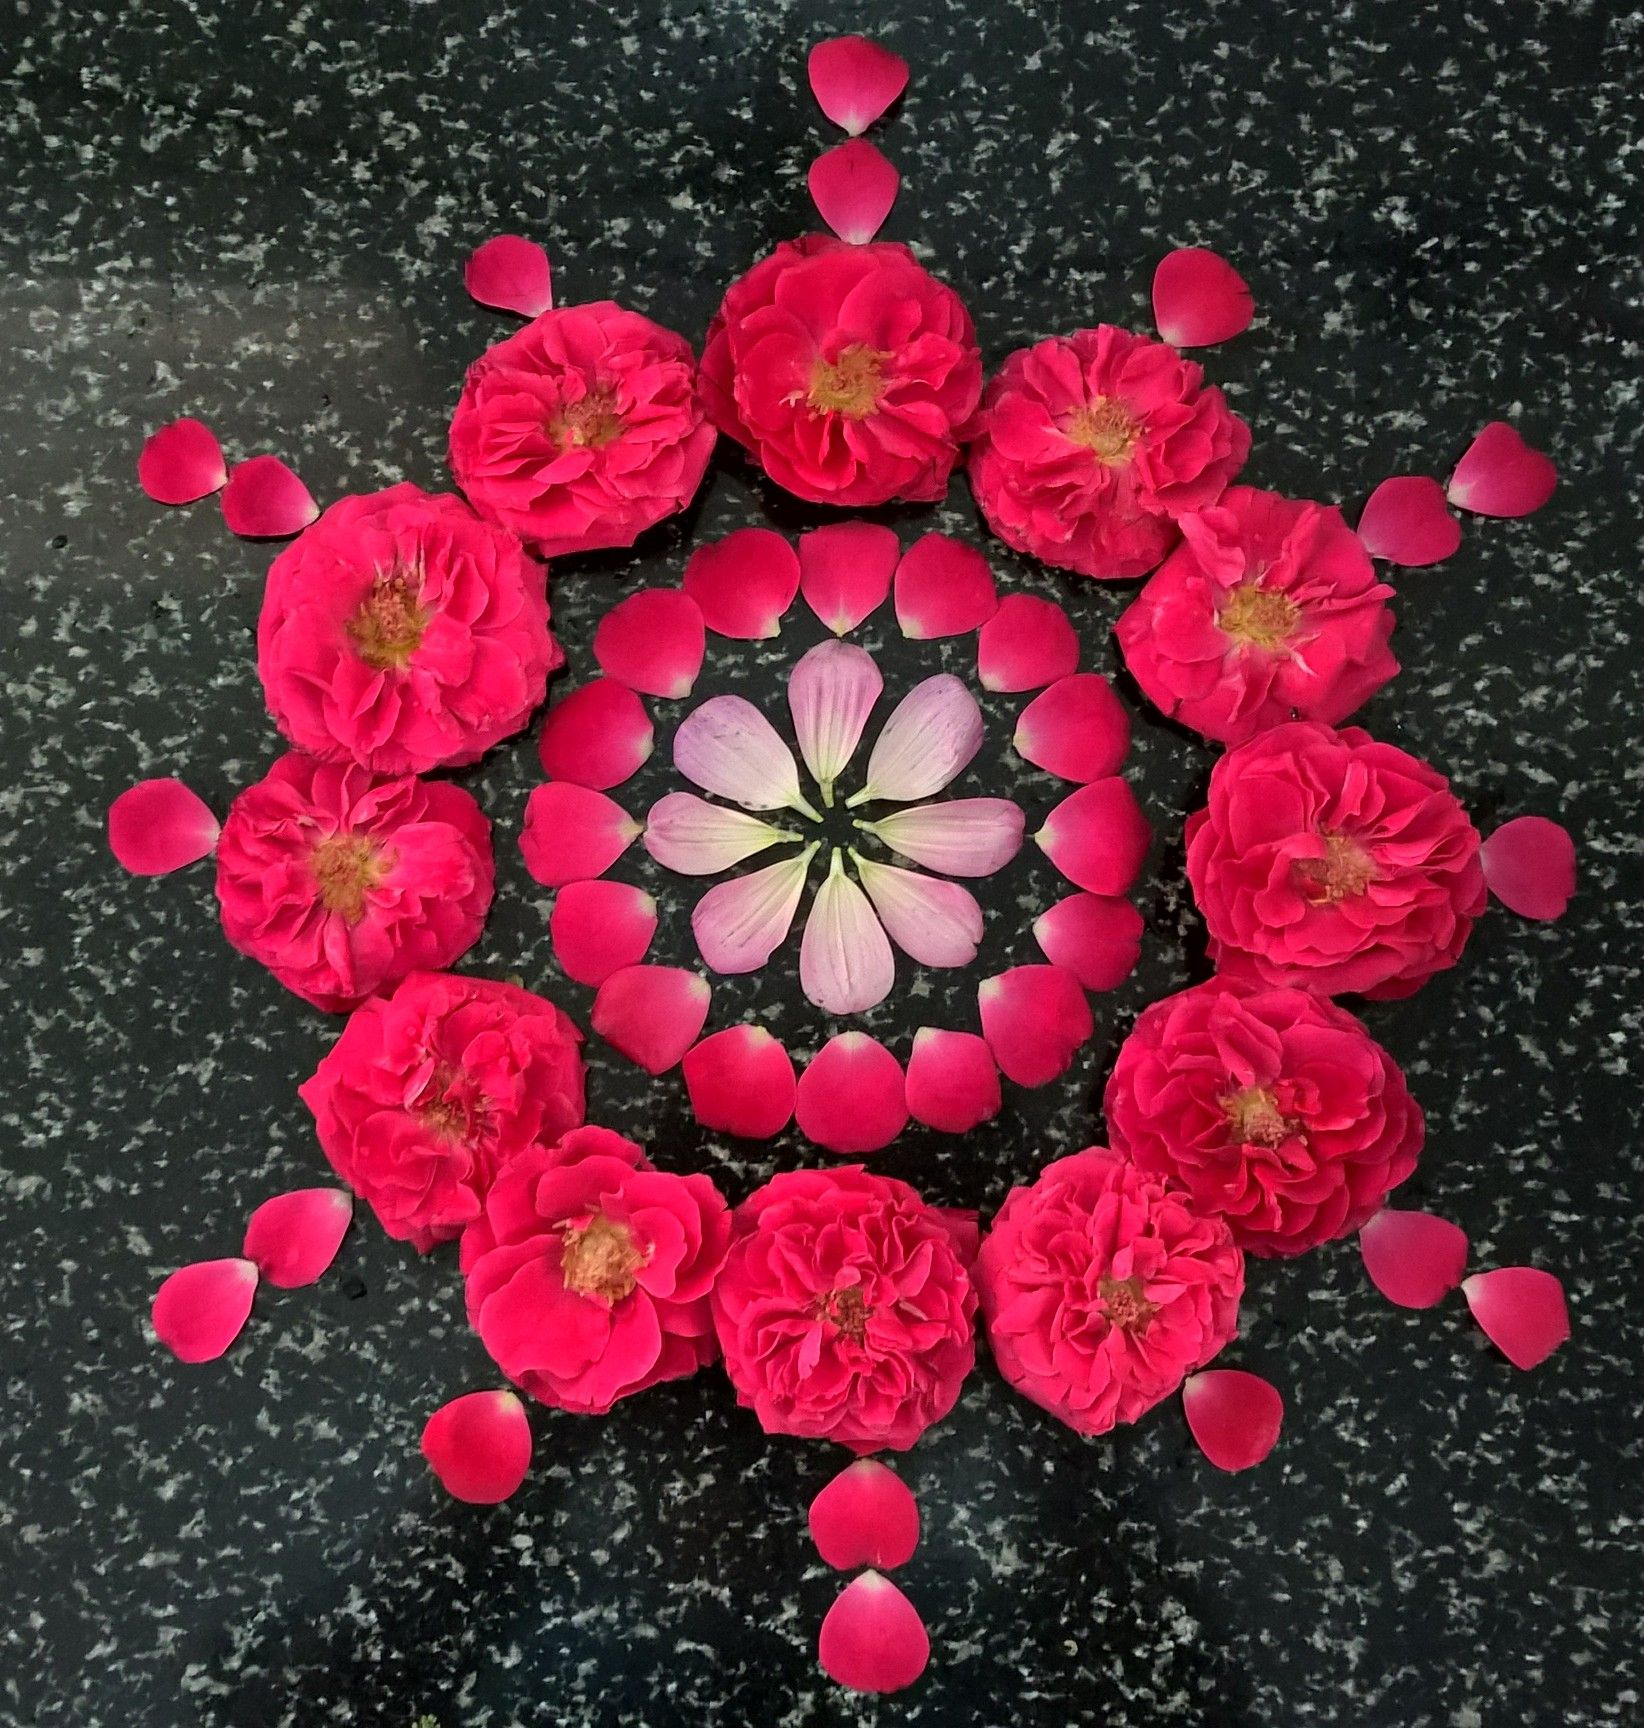 Rose petals n flowers.. Flower rangoli, Rangoli designs